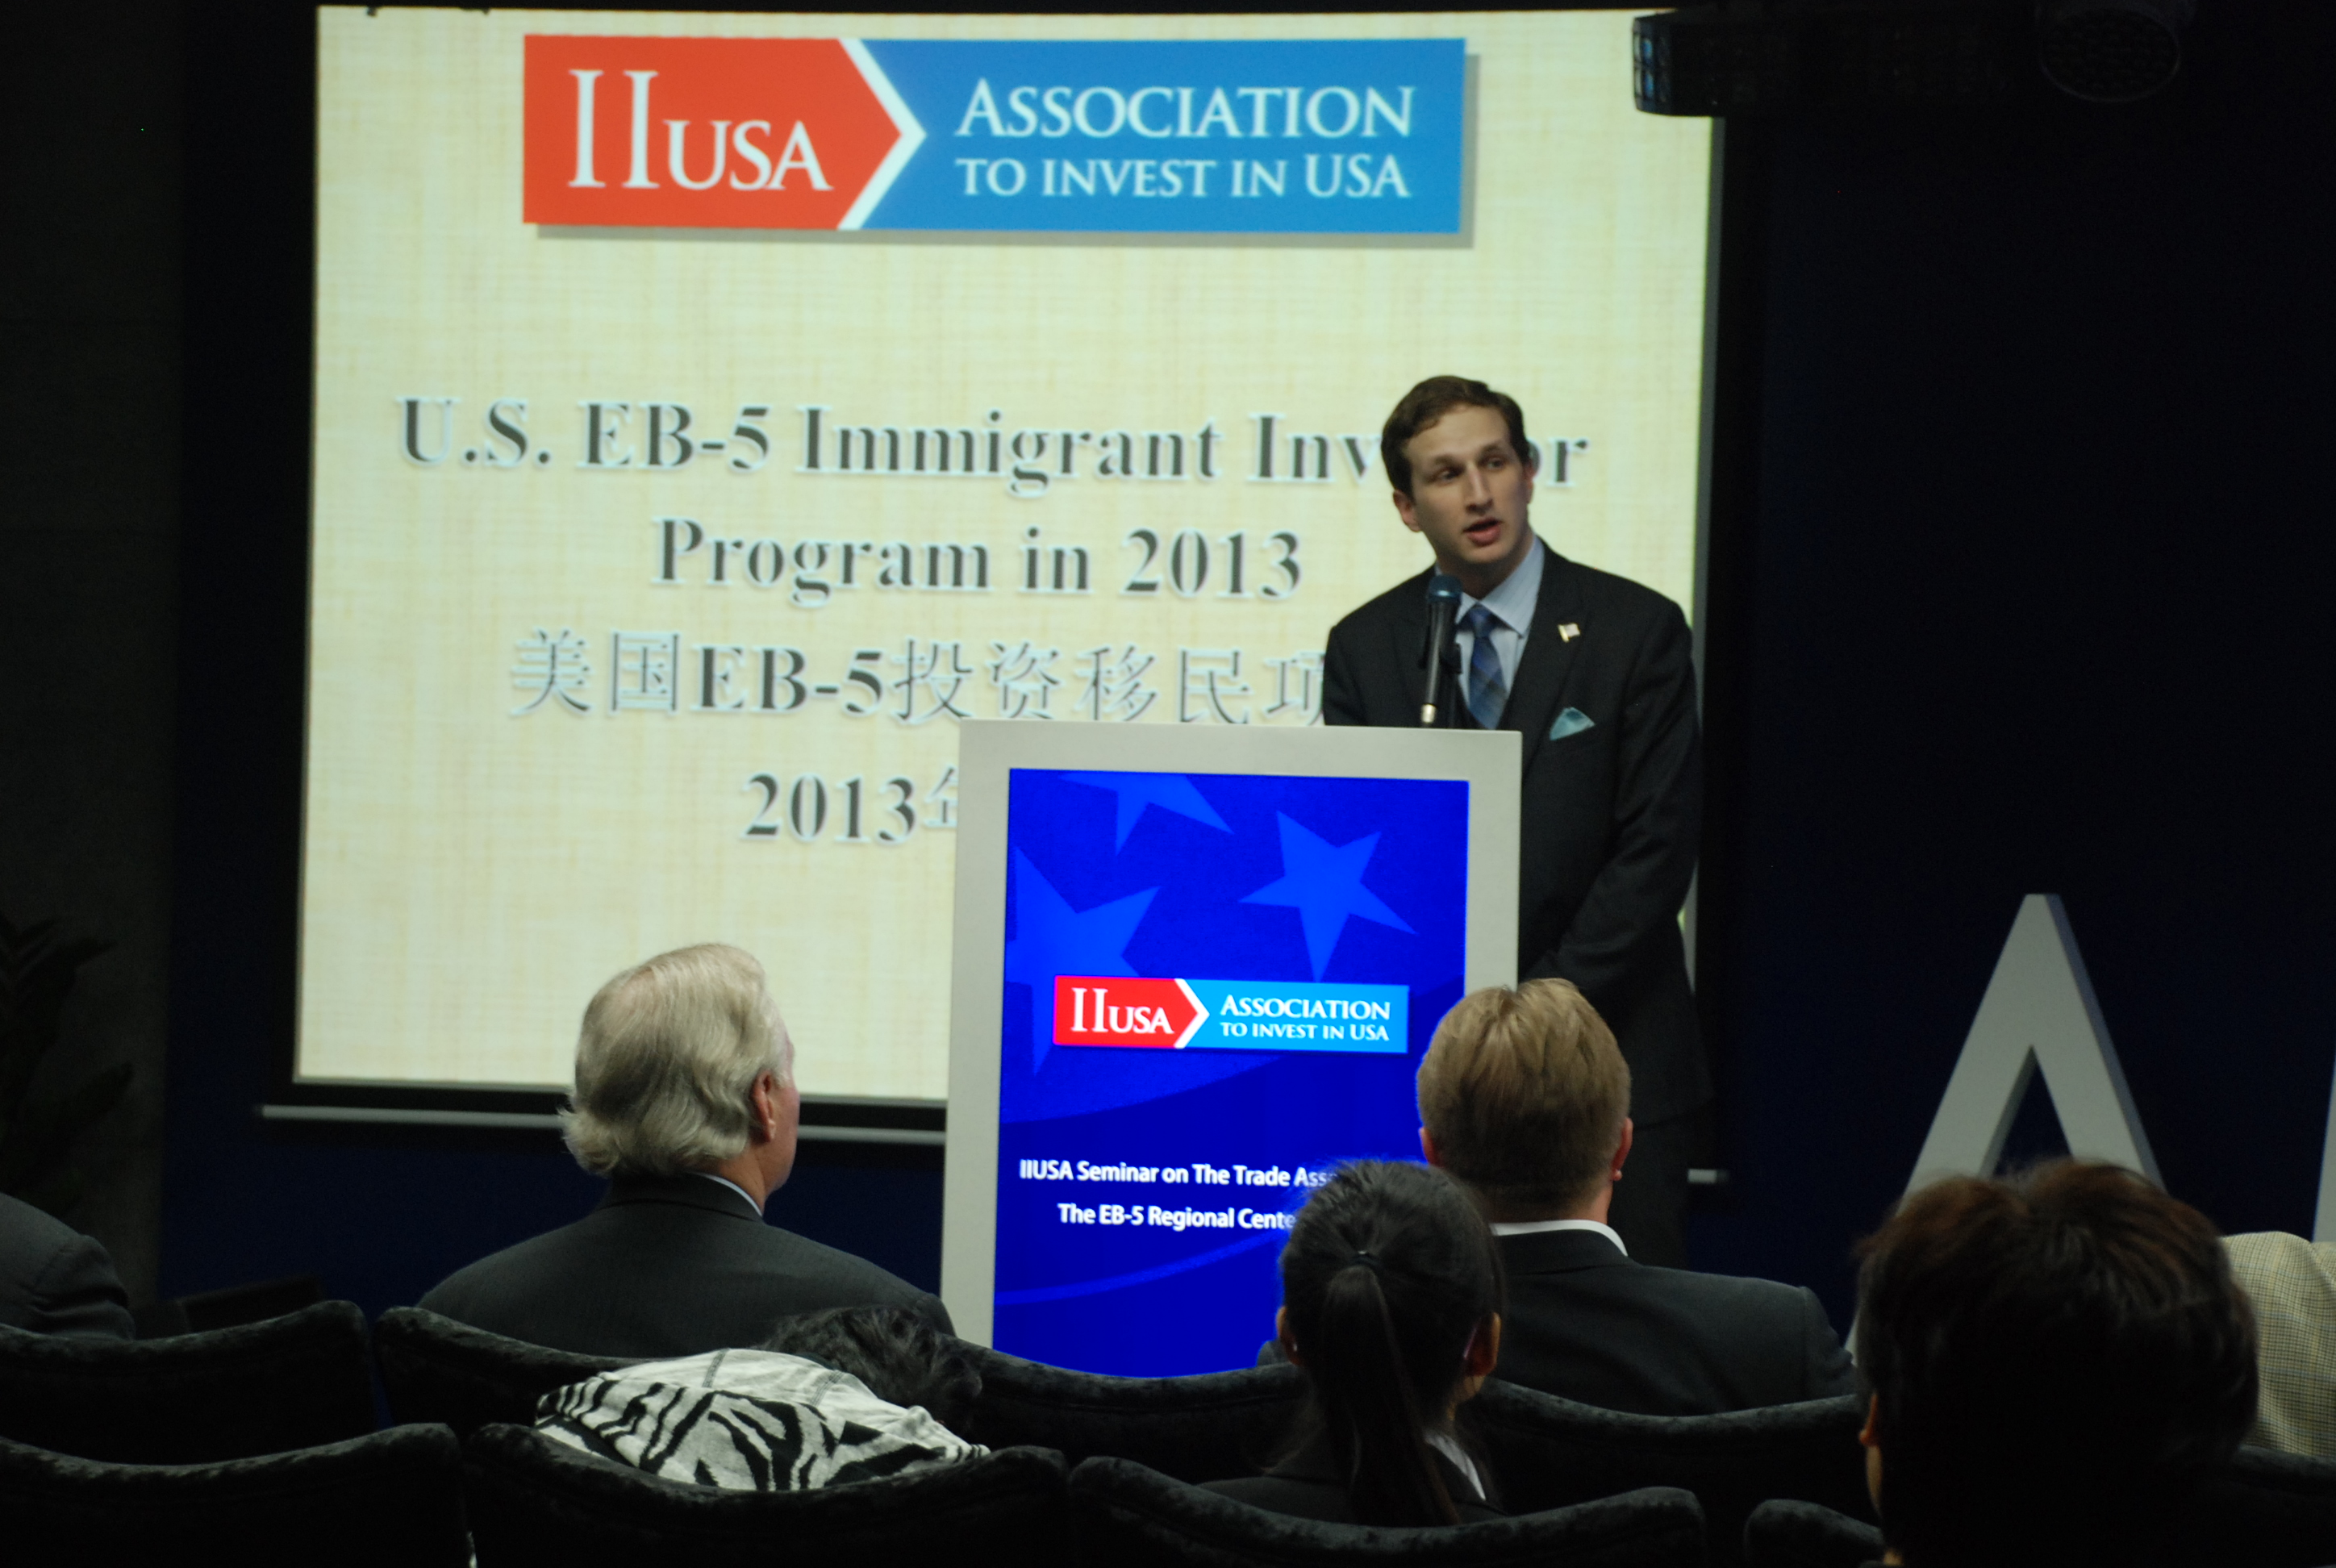 Looking Ahead to Spring! Attend IIUSA's Annual Membership Meeting & Regional Center Advocacy Conference, May 7-9, Washington D.C.